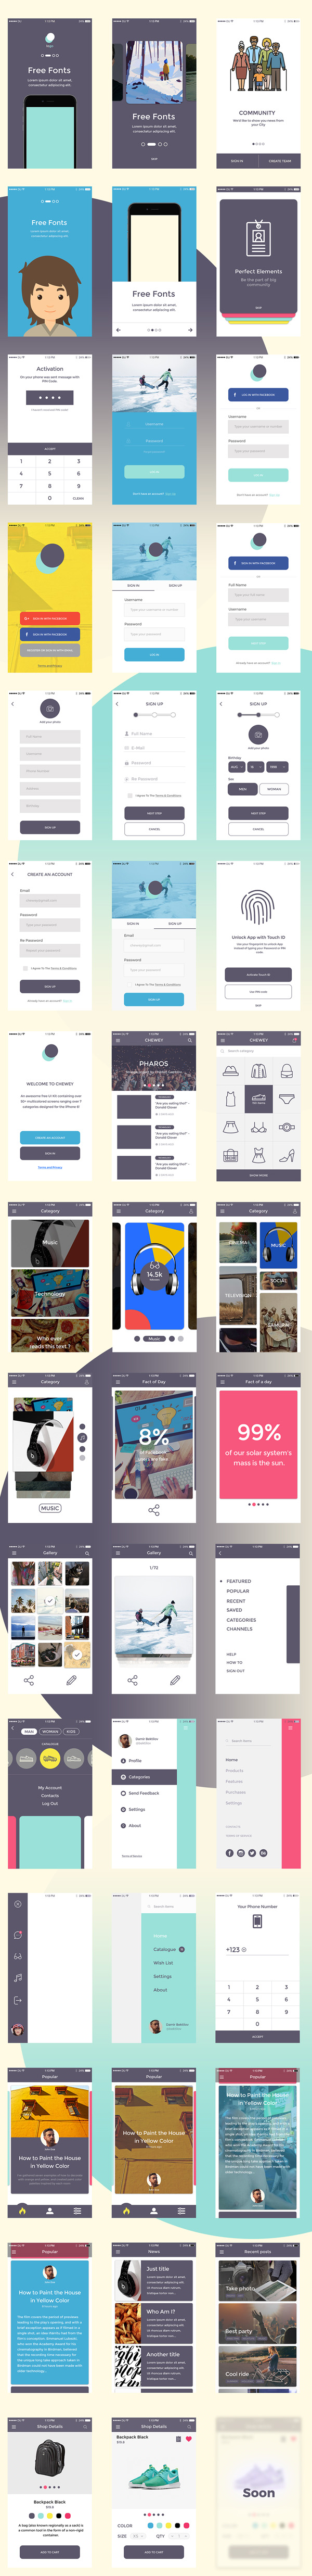 Chewey iOS UI Kit - Free Download